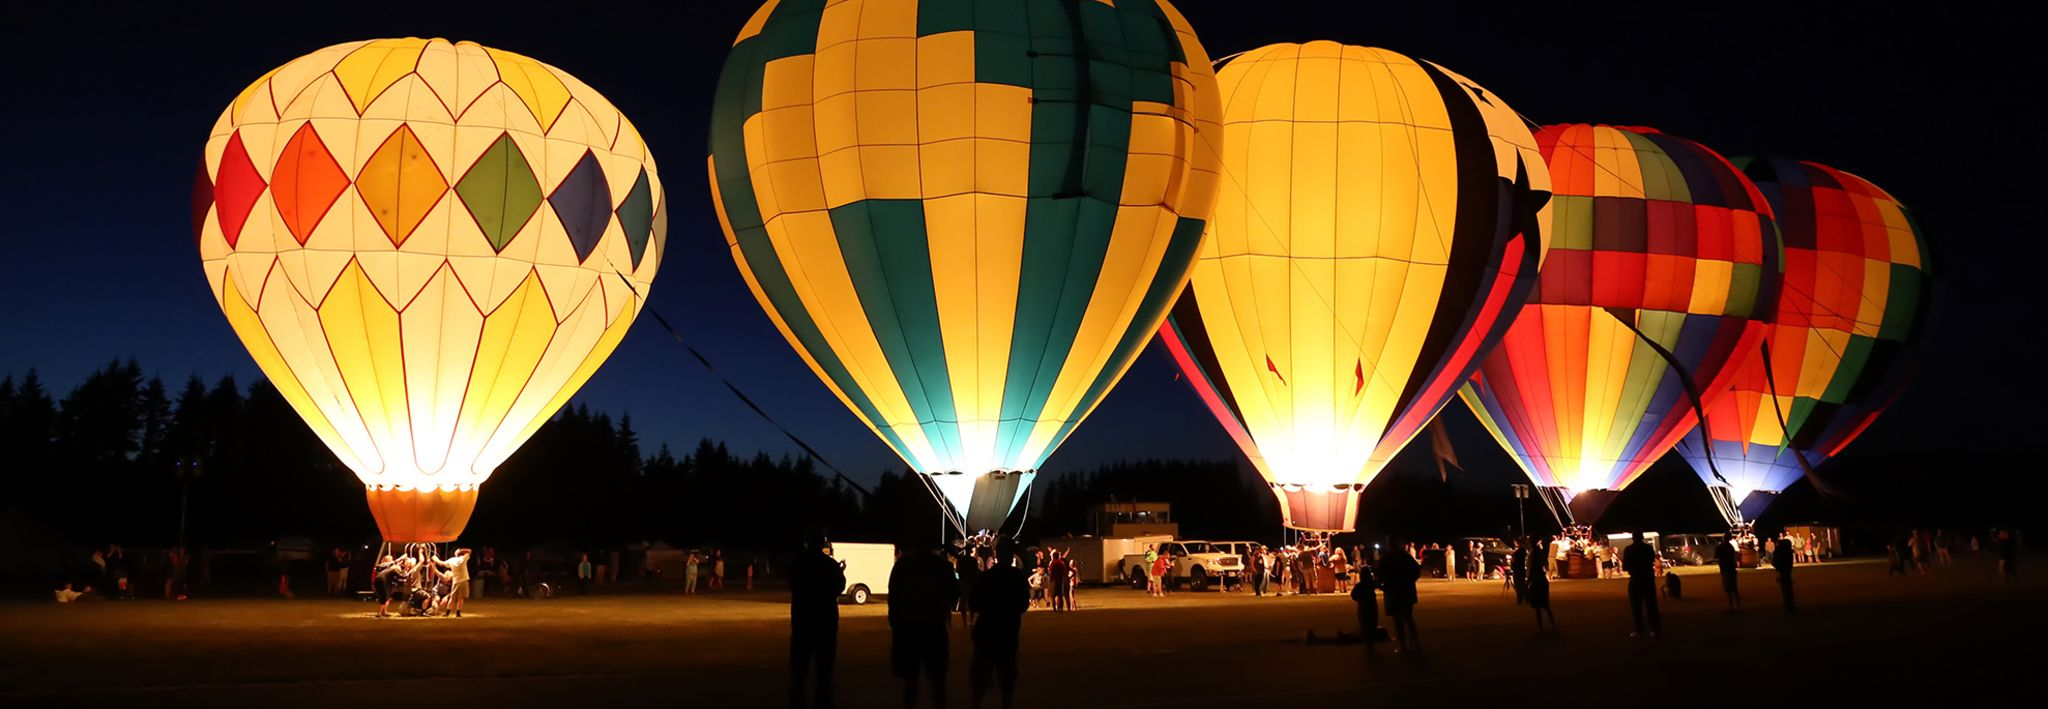 balloons glowing in front of night sky